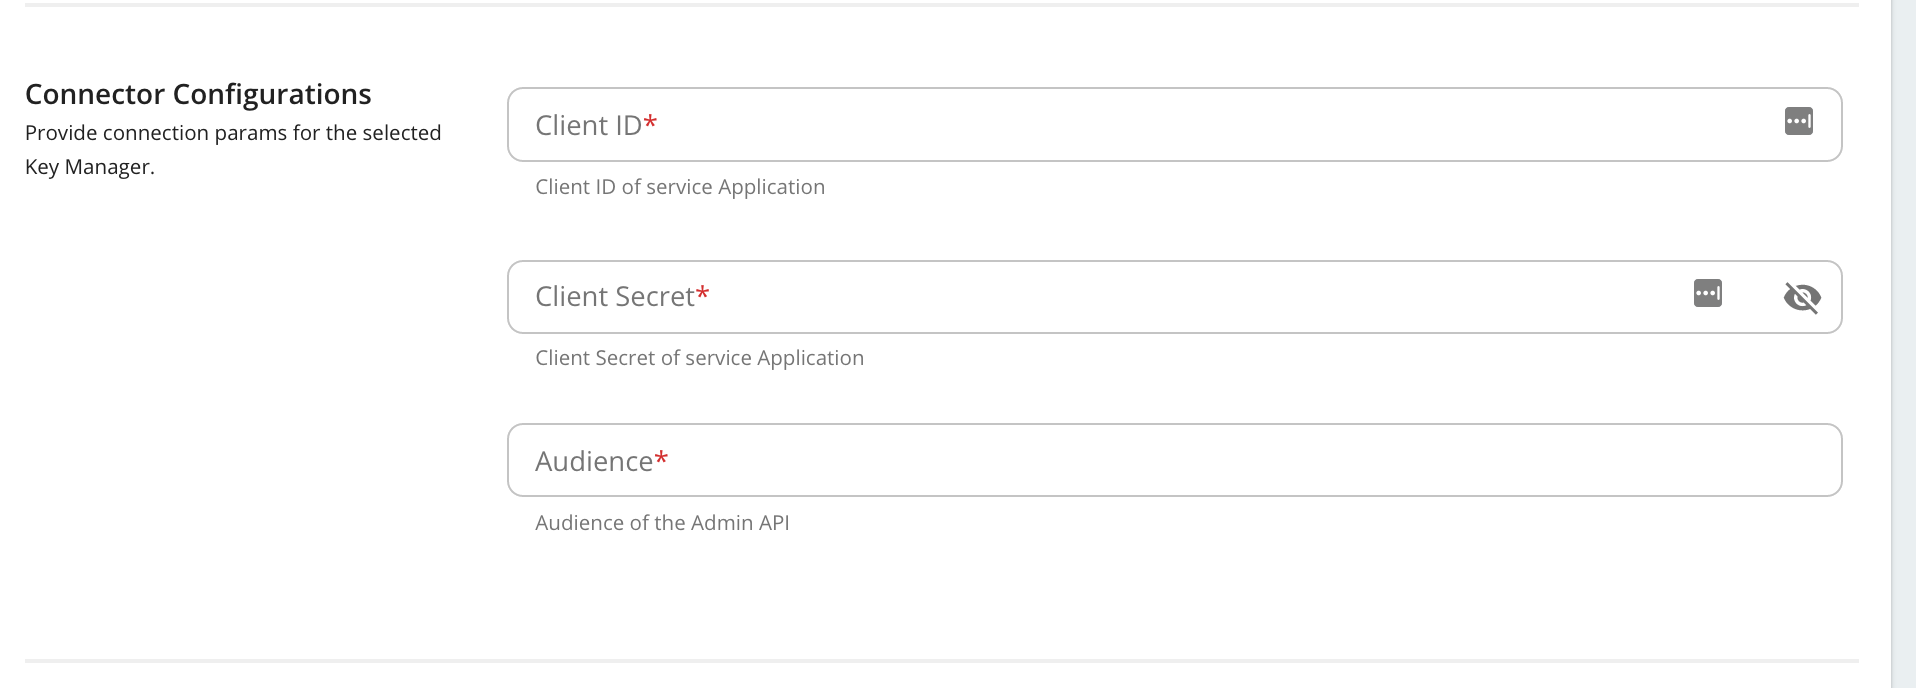 auth0 connector configs